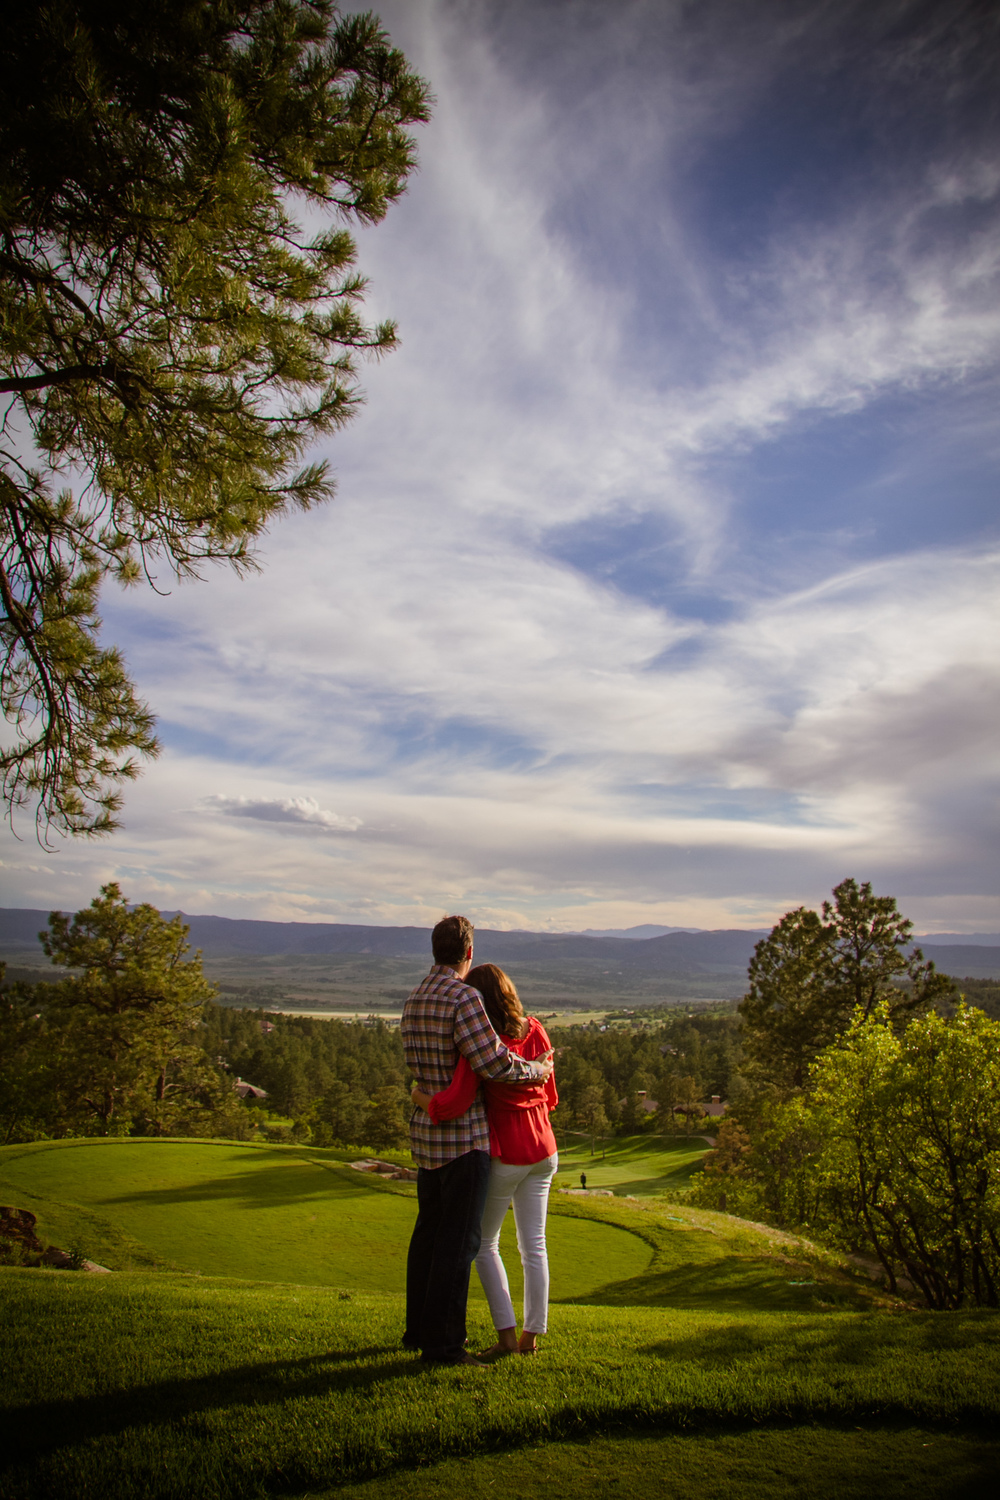 Castle_Pines_Colorado'_Engagement_Photos_002.JPG